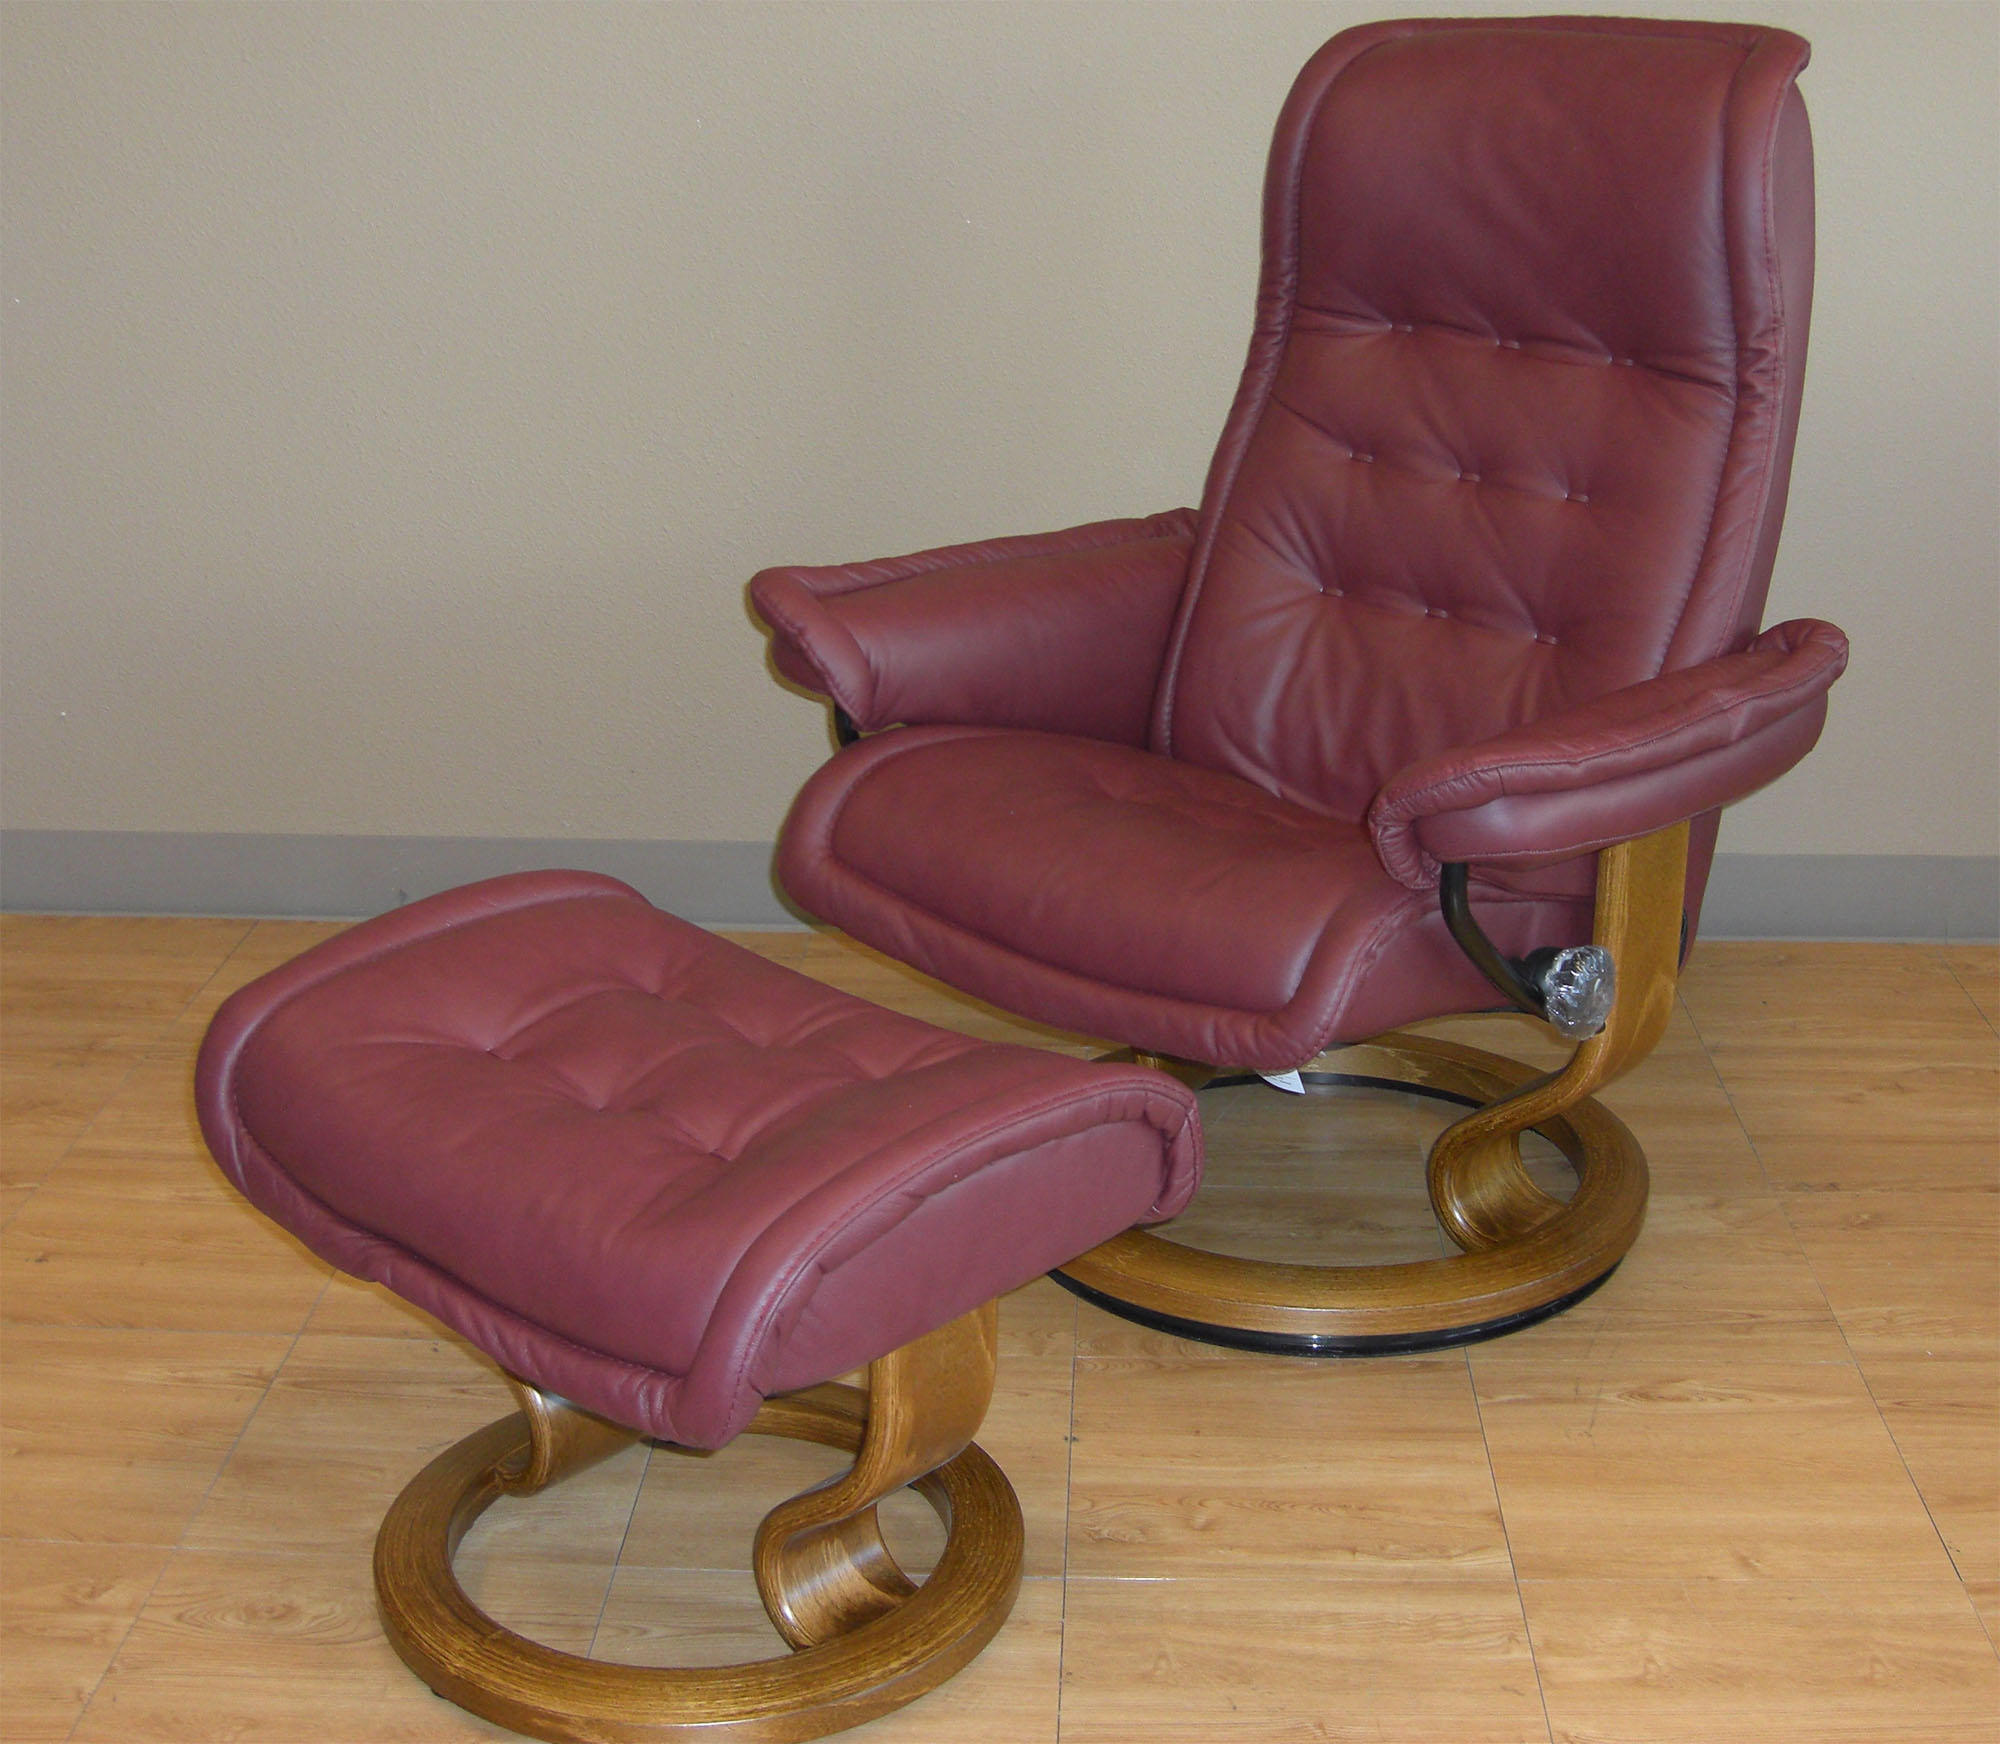 stressless paloma new winered 09427 leather by ekornes stressless paloma new winered 09427. Black Bedroom Furniture Sets. Home Design Ideas